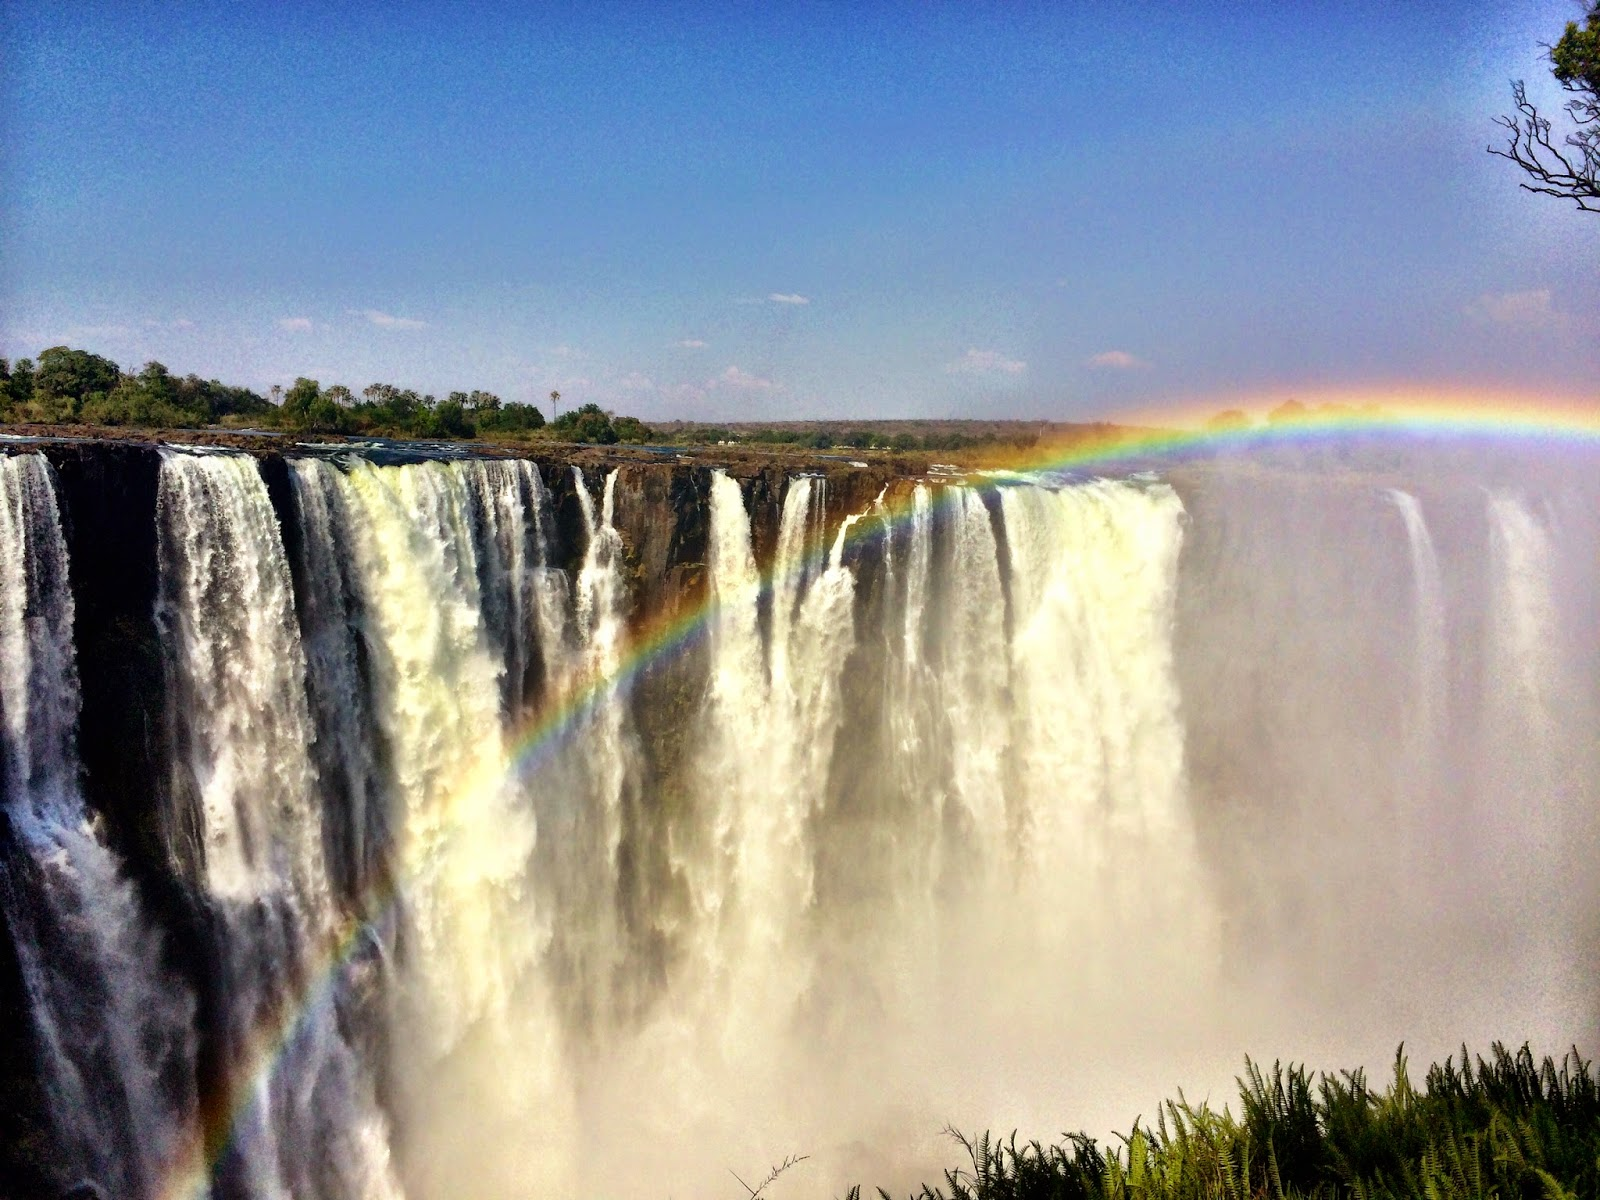 A rainbow over Victoria Falls, Zimbabwe (October 2014)